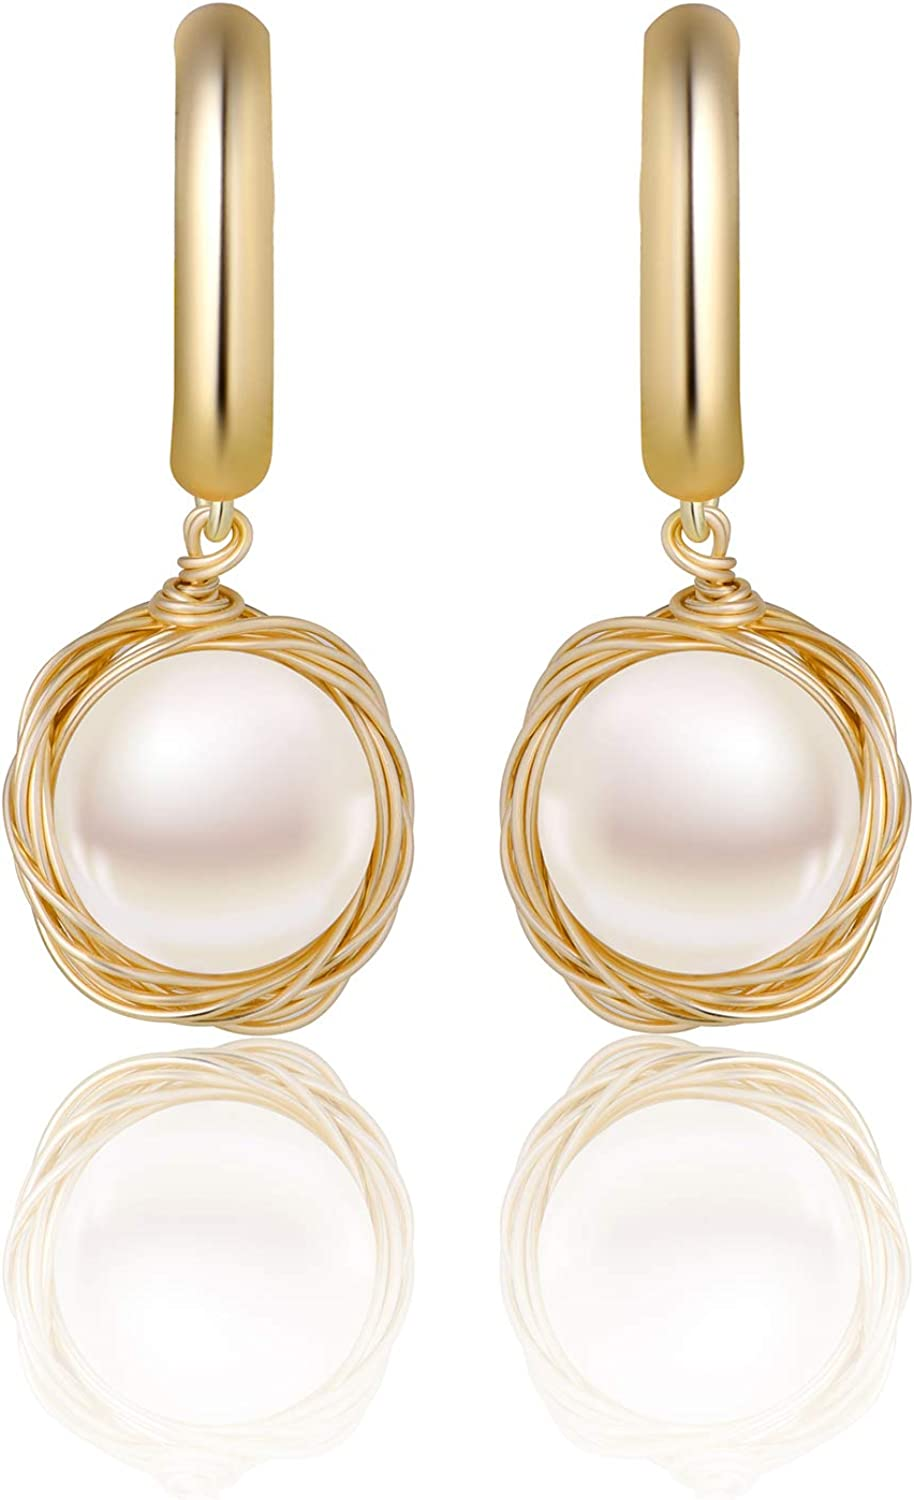 Baltimore Mall Max 88% OFF Round Freshwater Cultured Pearl Earrings Dangle Fashion Earring